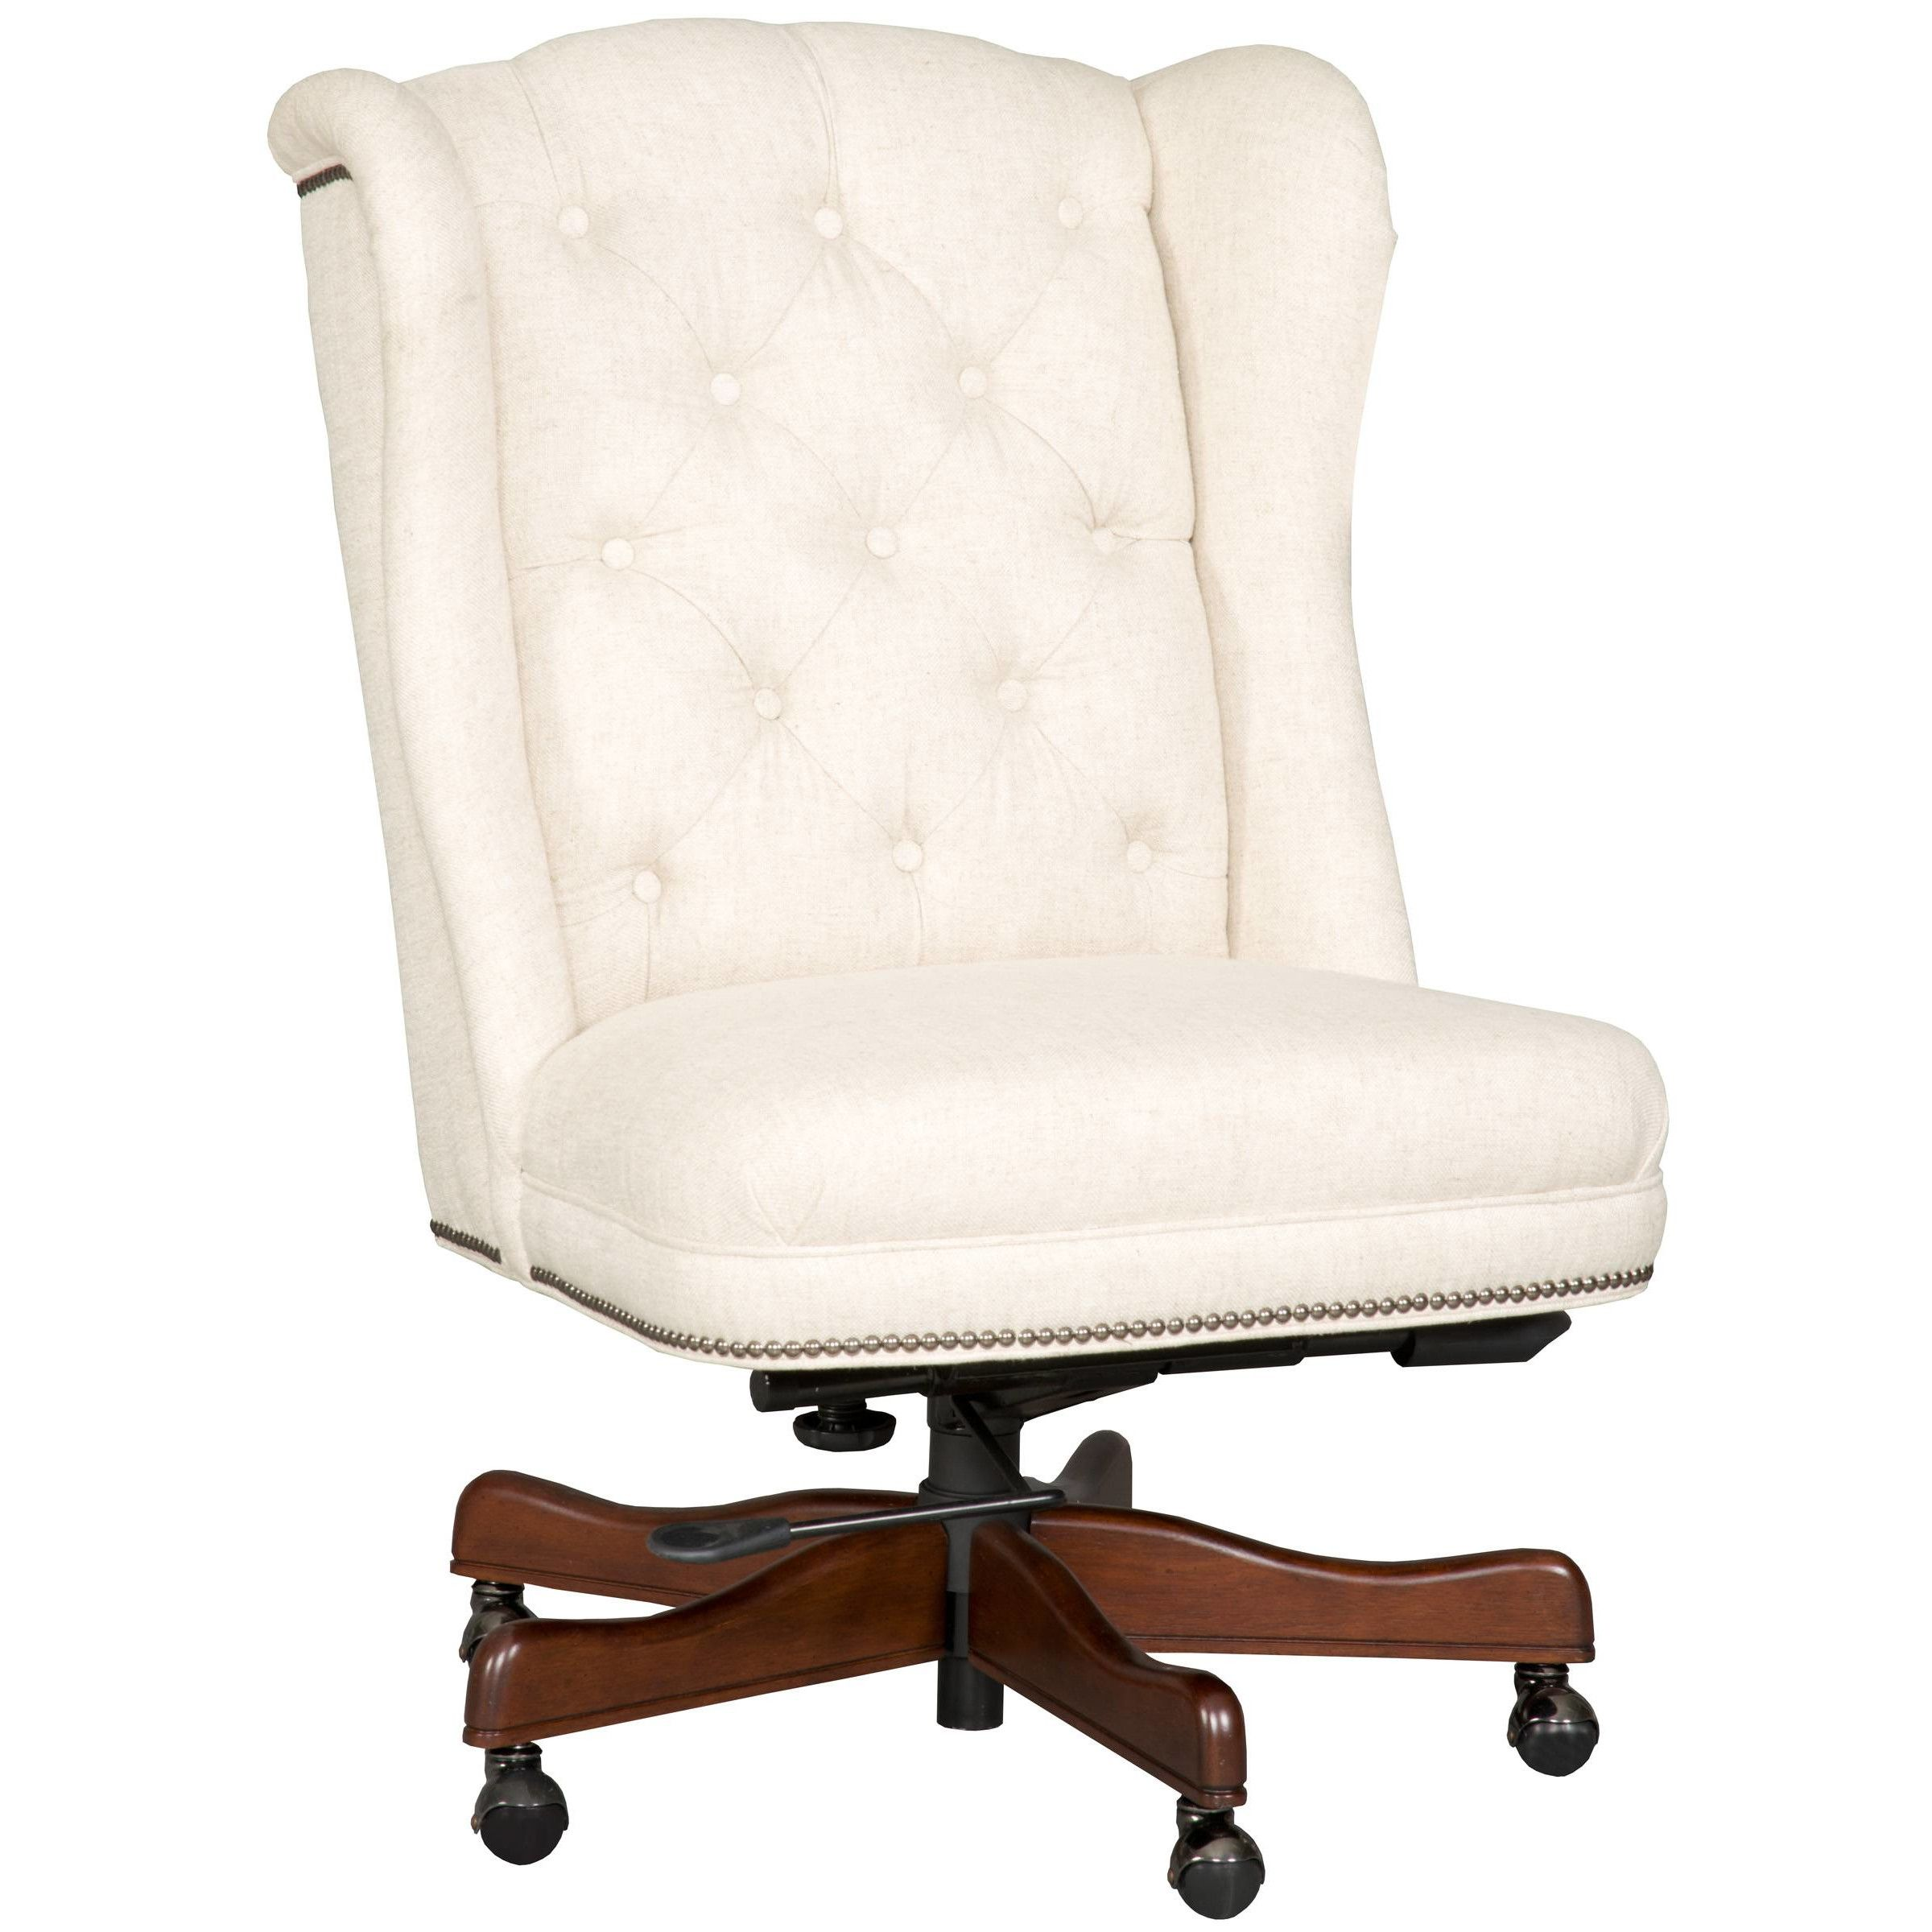 Hooker Furniture Leather Desk Chair